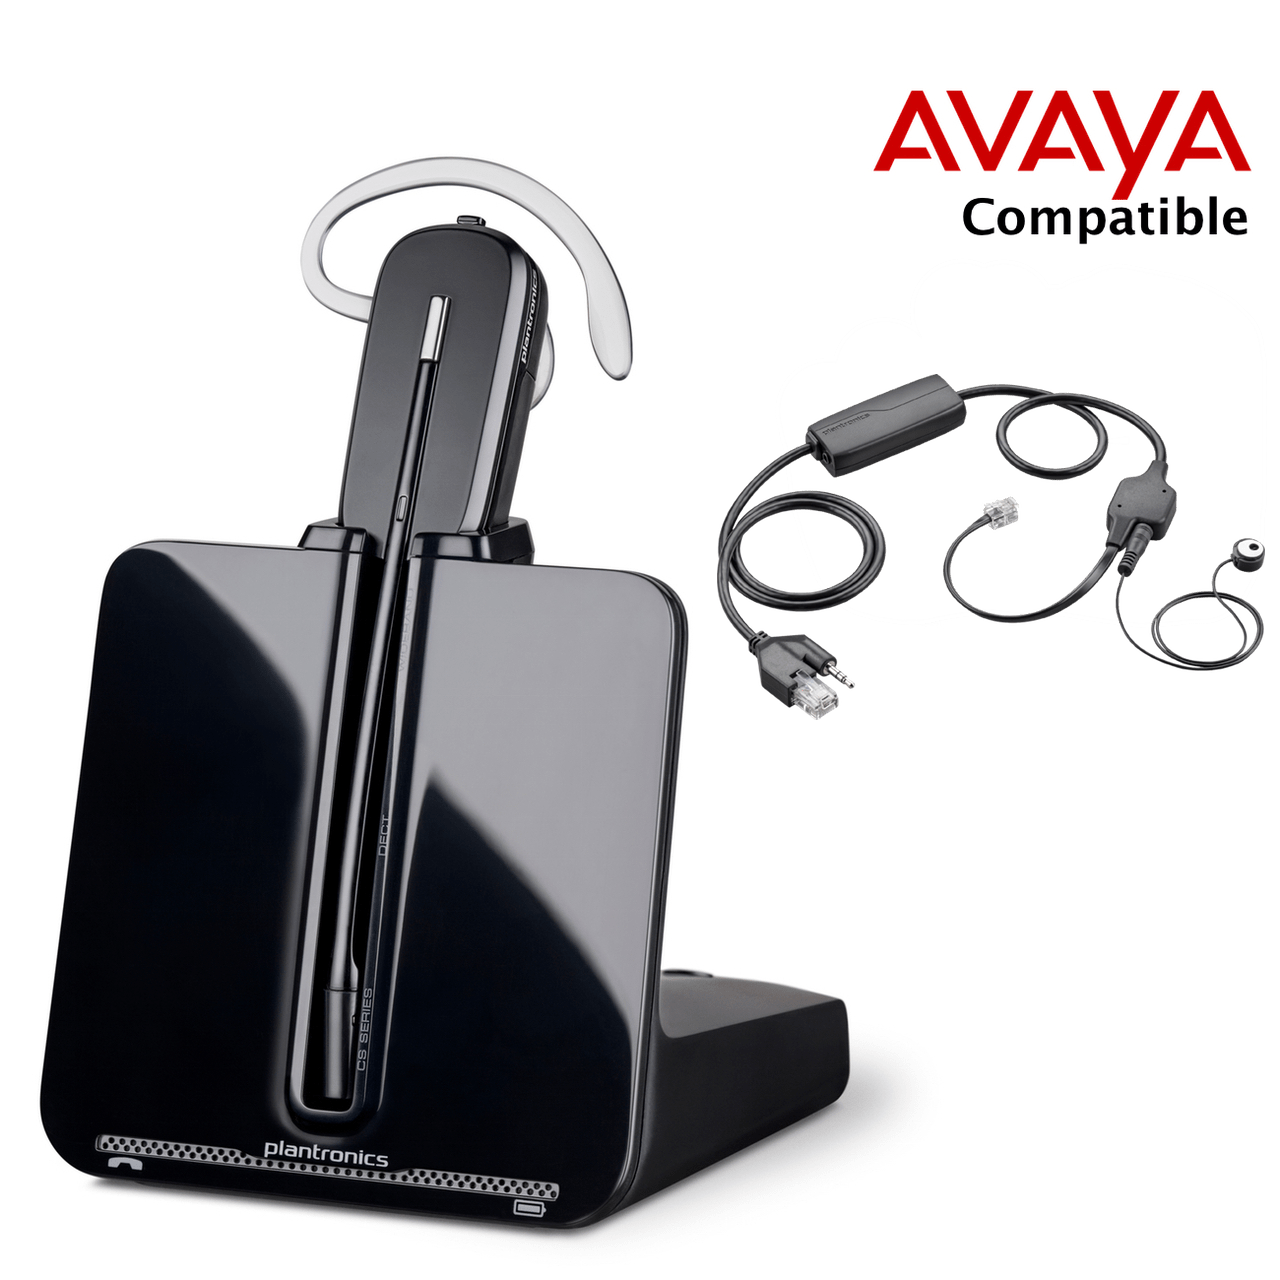 avaya compatible plantronics voip wireless headset bundle loading zoom plantronics headset wiring diagram  [ 1280 x 1280 Pixel ]